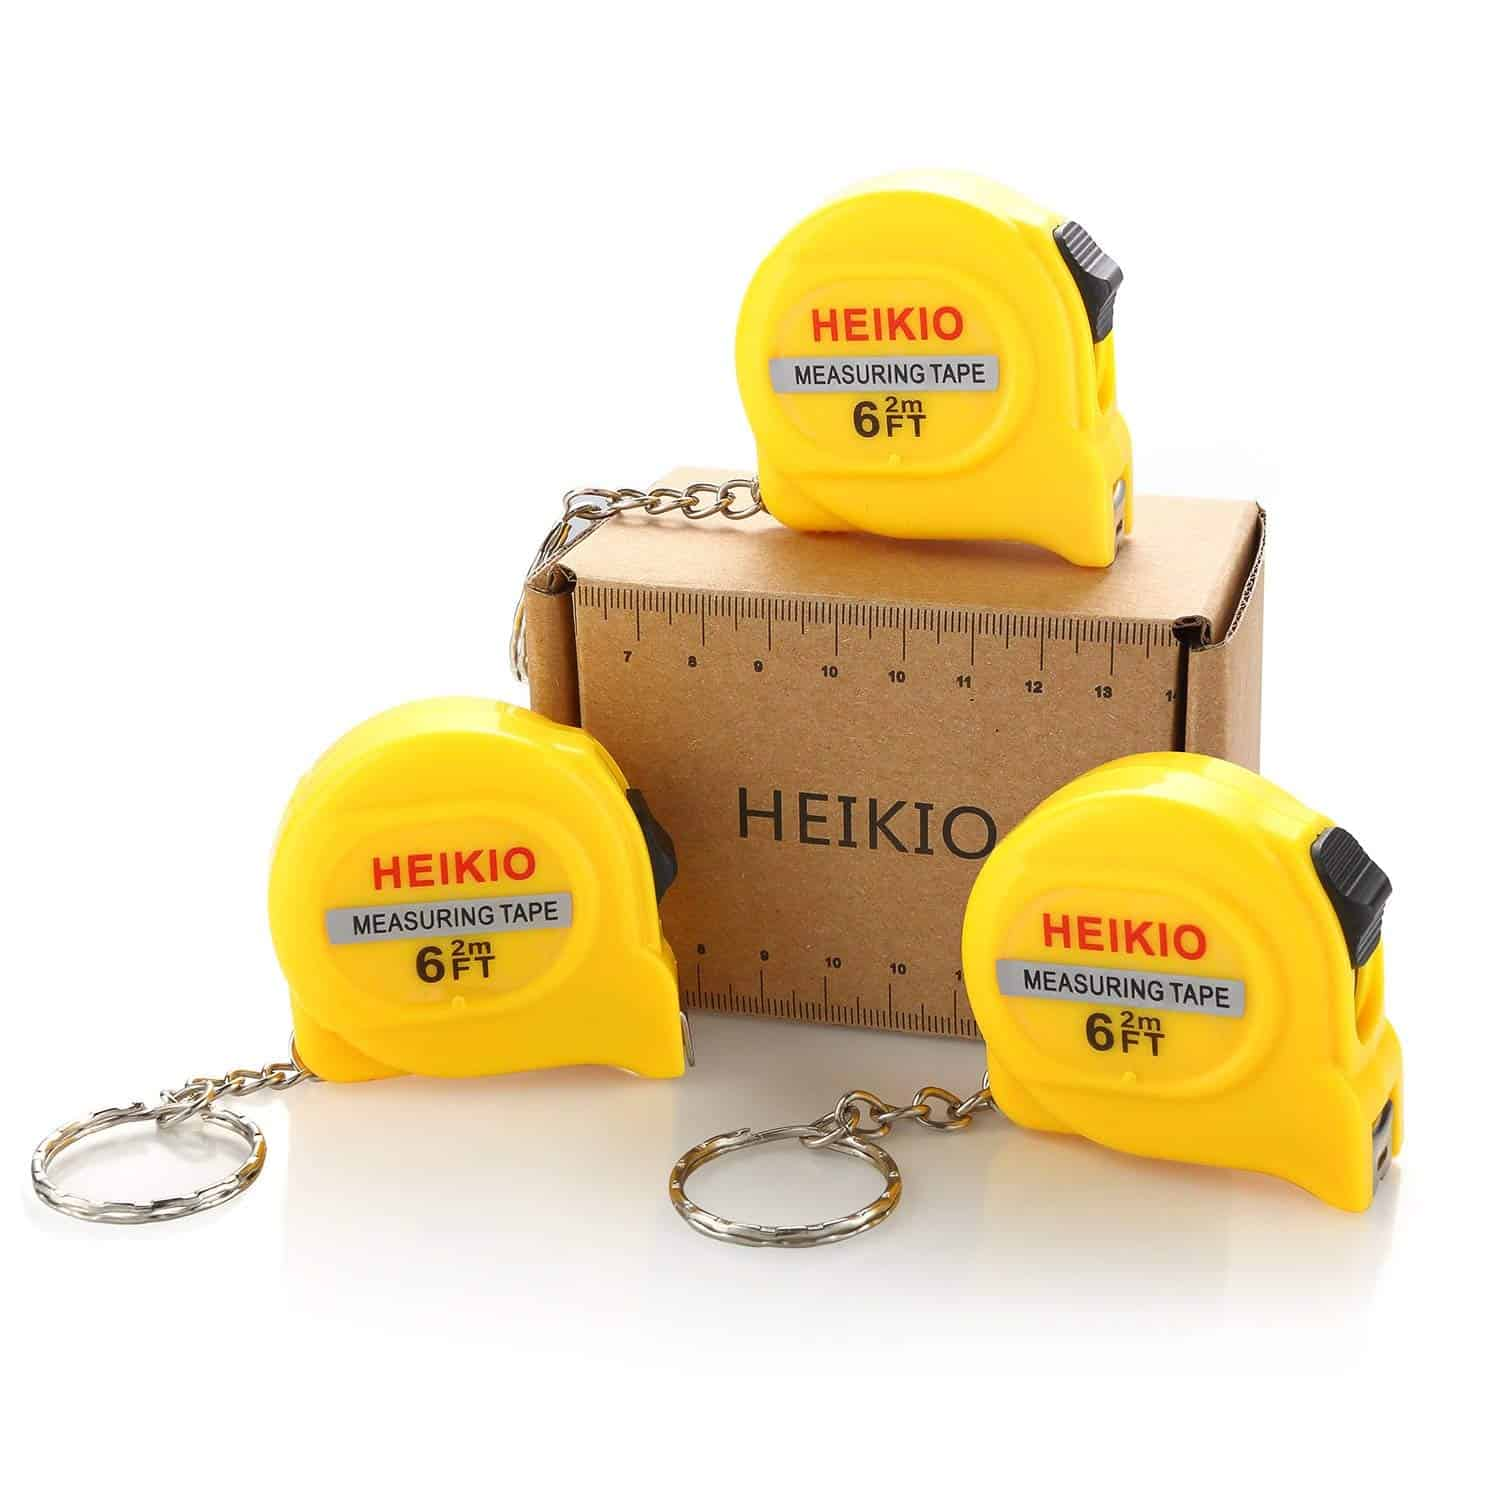 EIKIO 3-pack measuring tape with belt clip and key chain and locking.